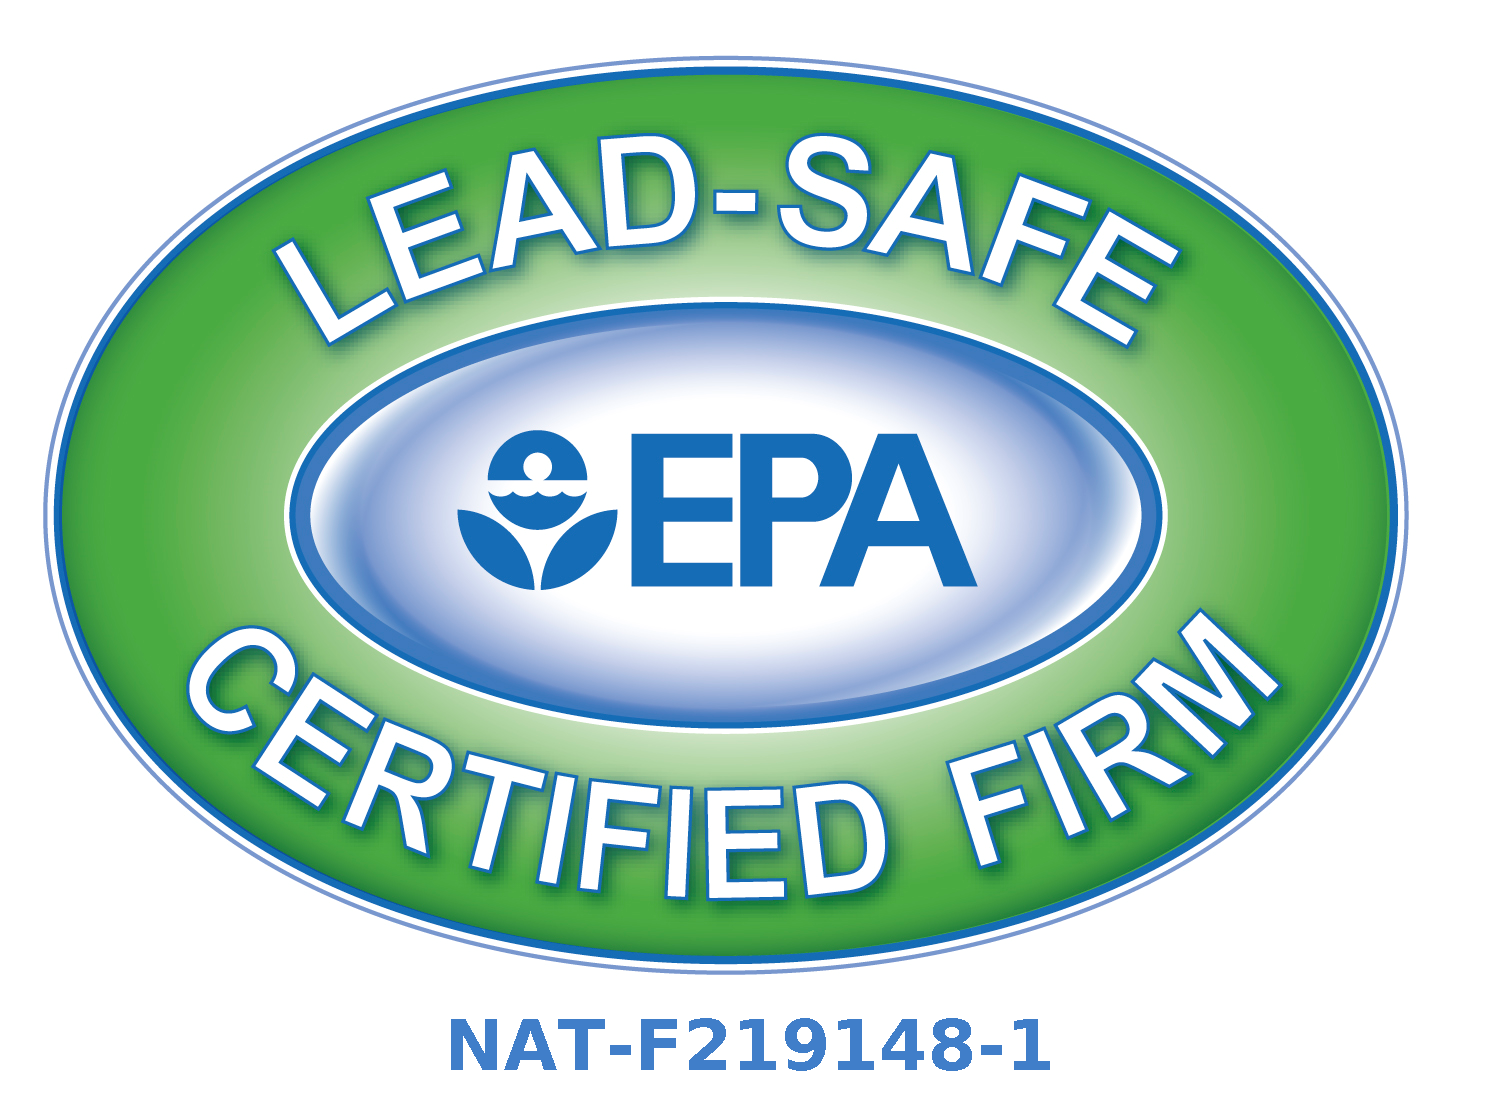 EPA_Leadsafe_Logo_NAT-F219148-1